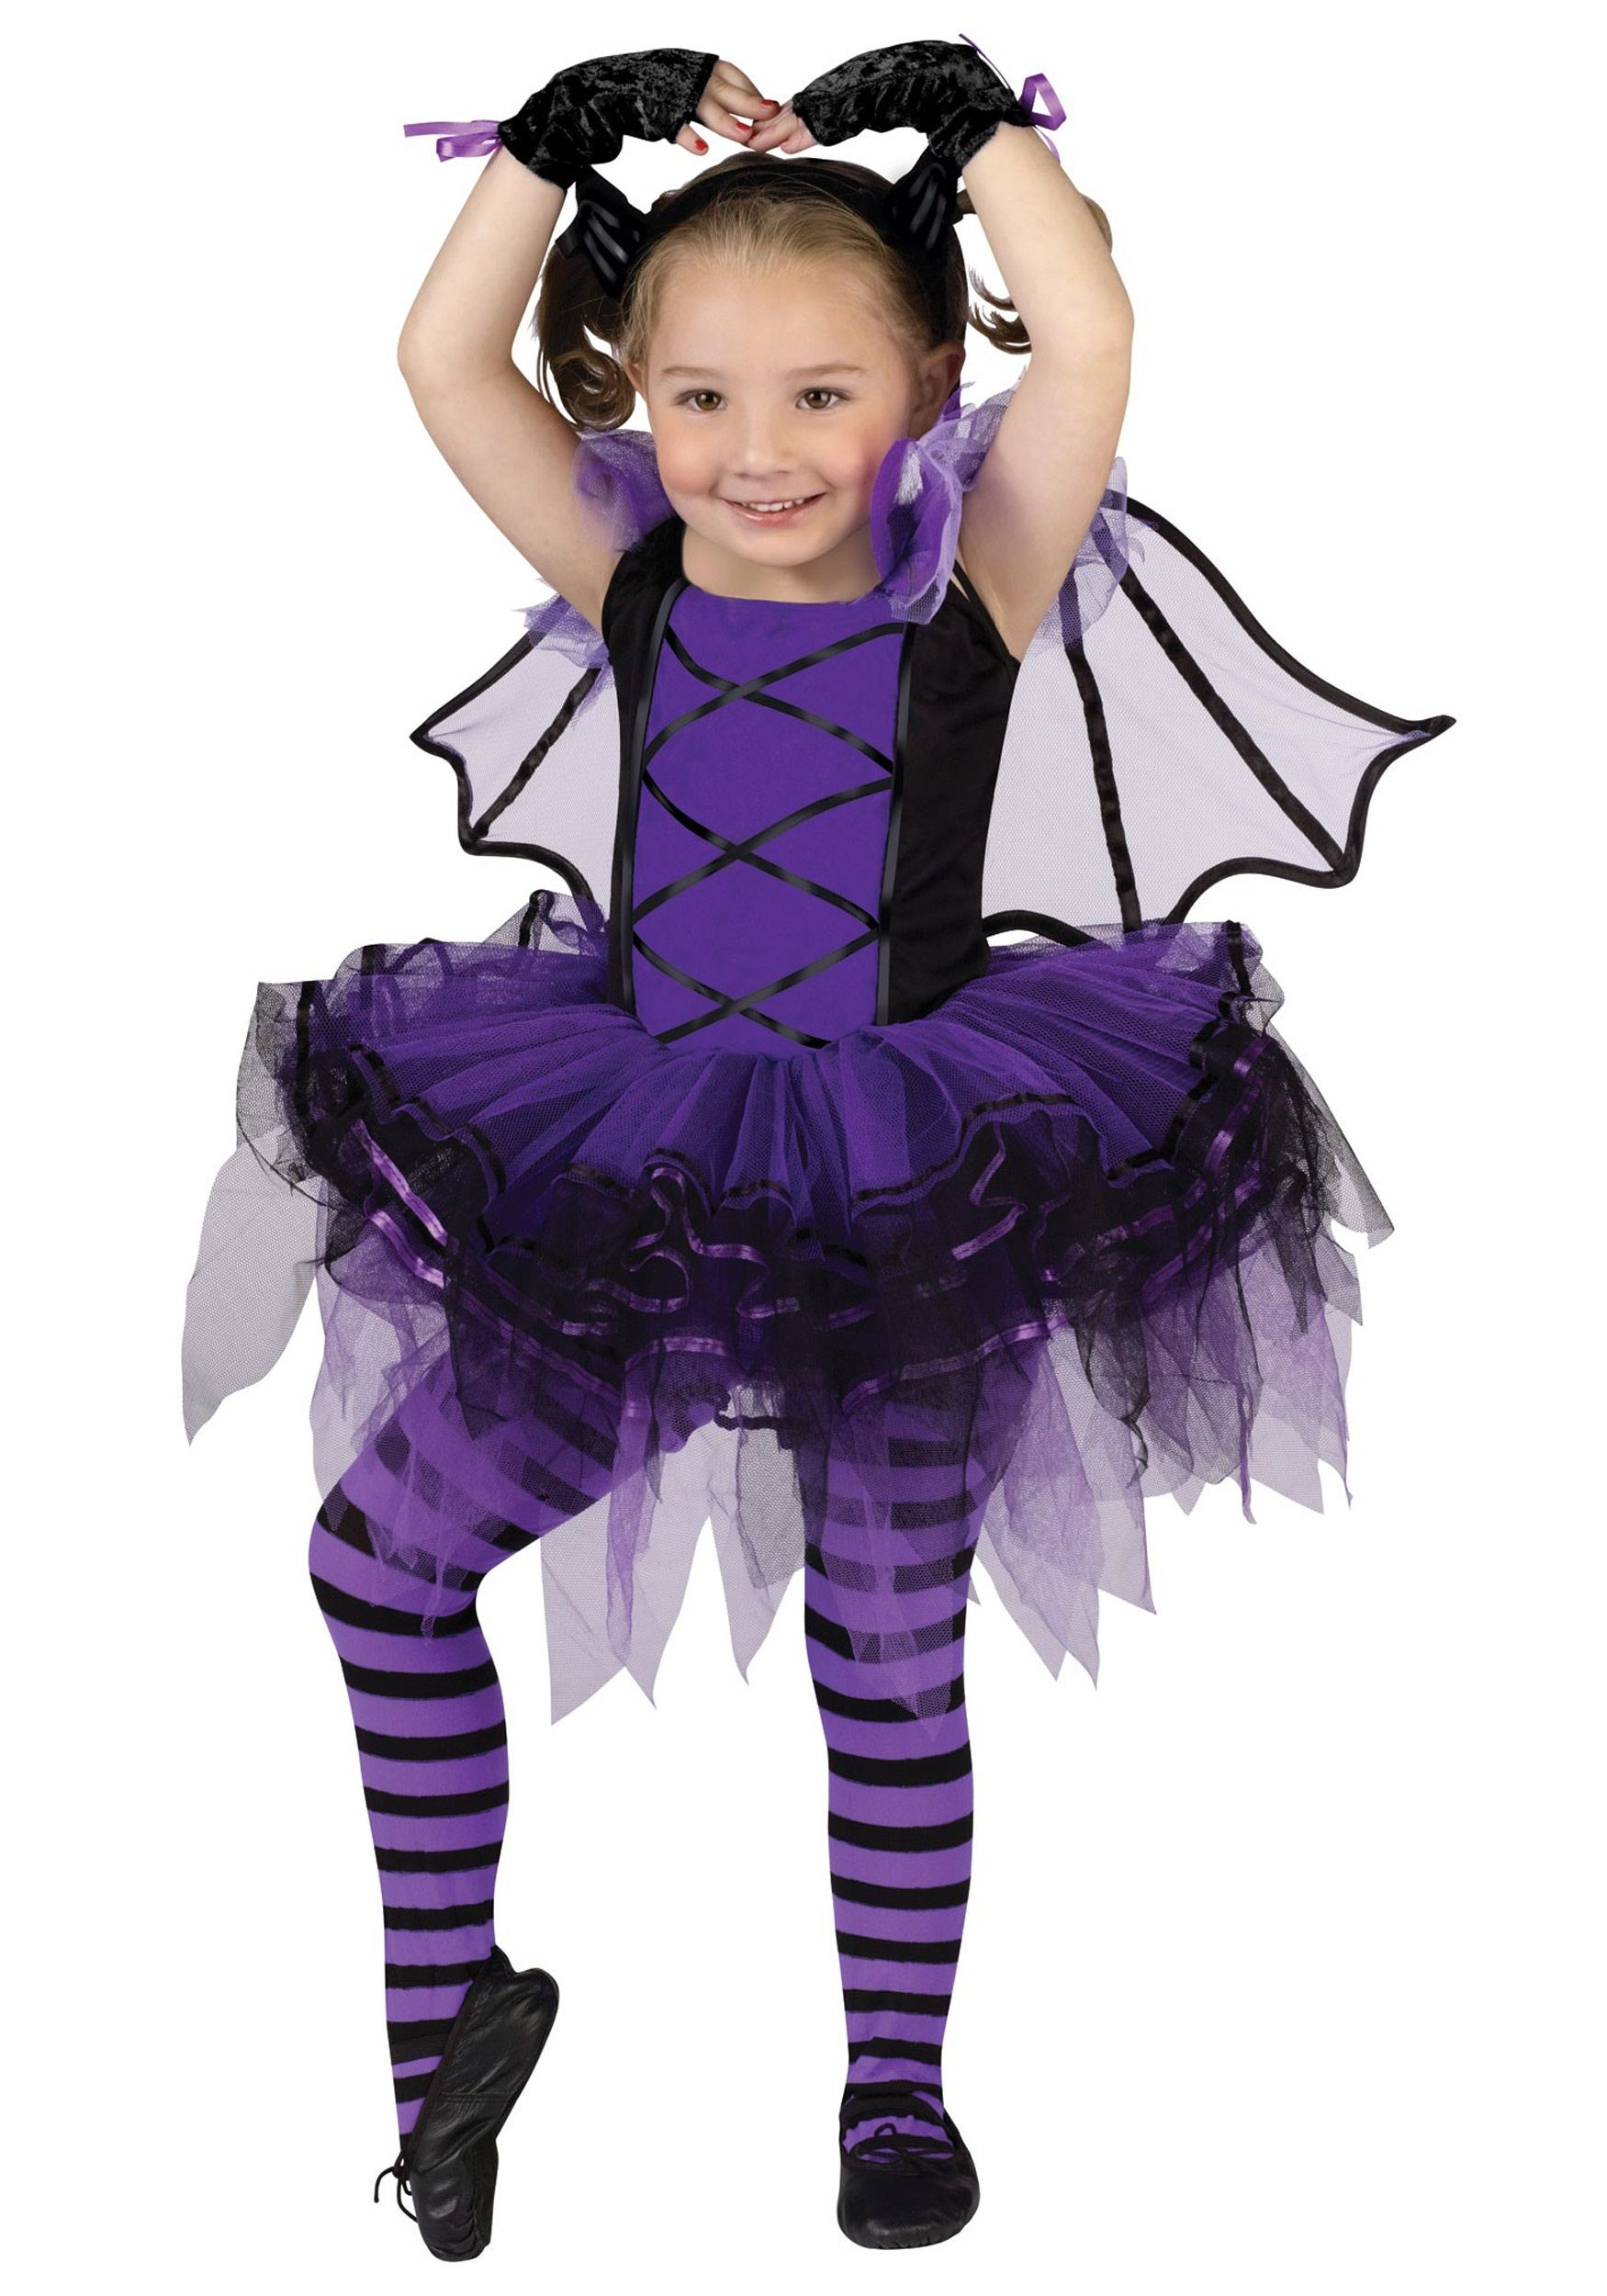 girls v&ire bat costume - Google Search  sc 1 st  Pinterest : girl bat costumes  - Germanpascual.Com